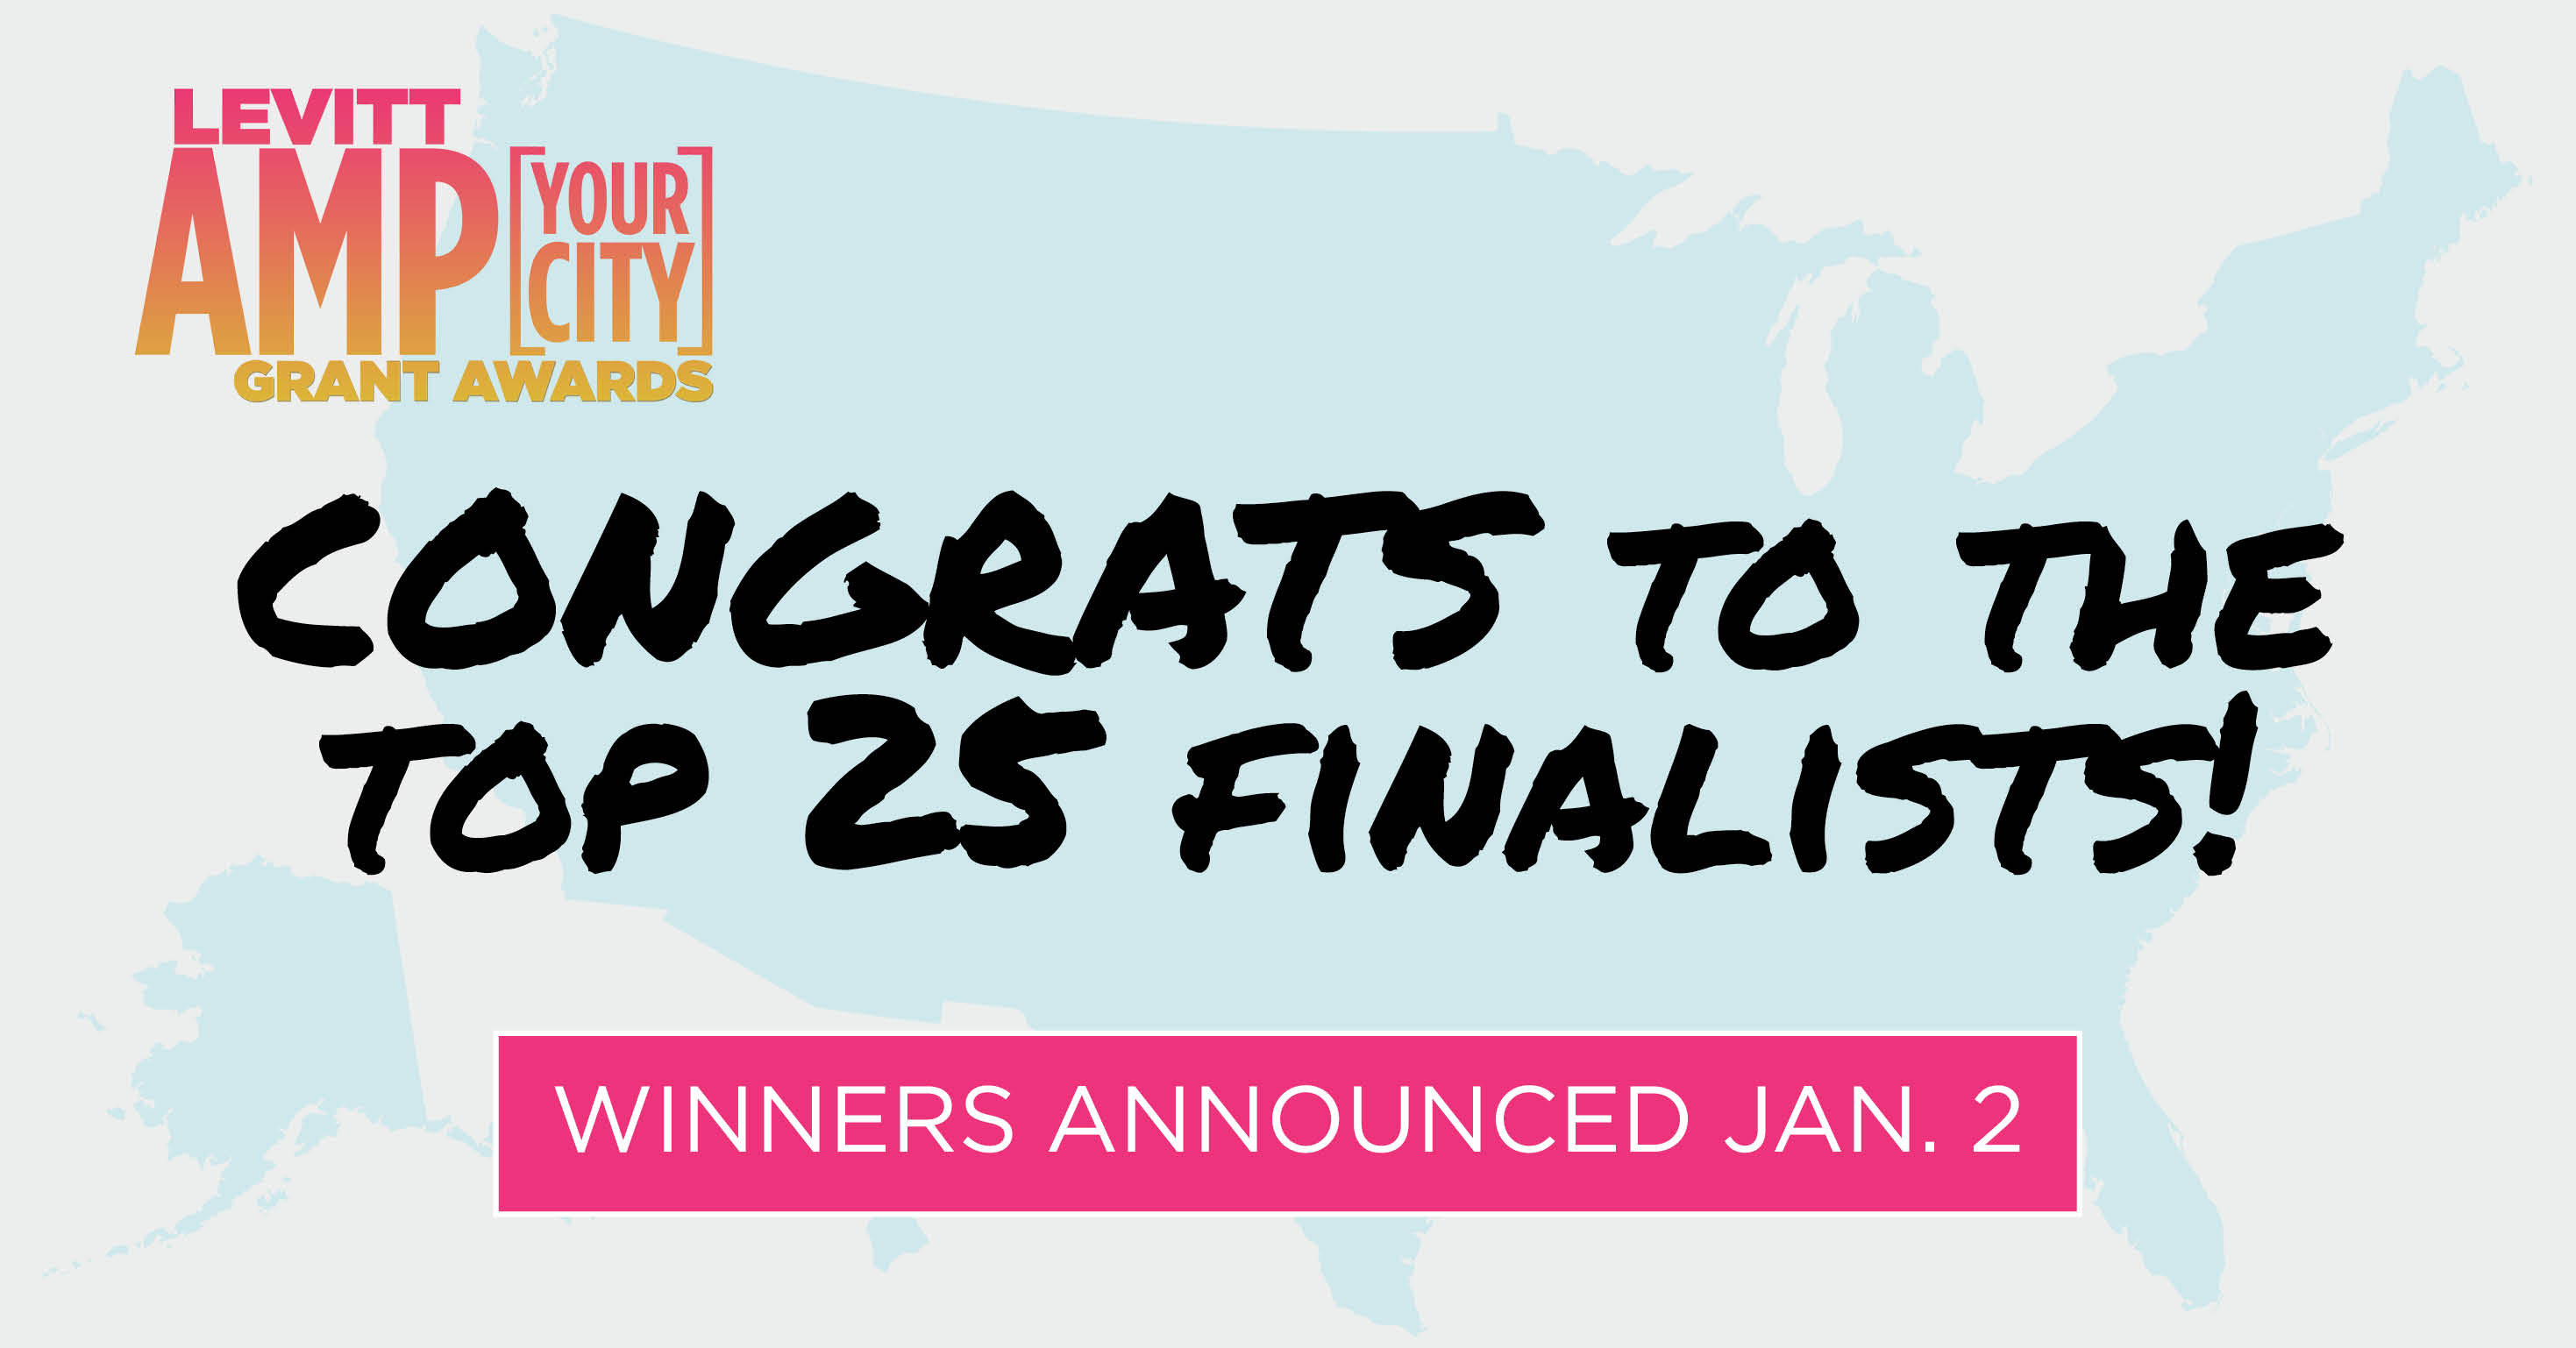 CONGRATS TO THE TOP 25 FINALISTS